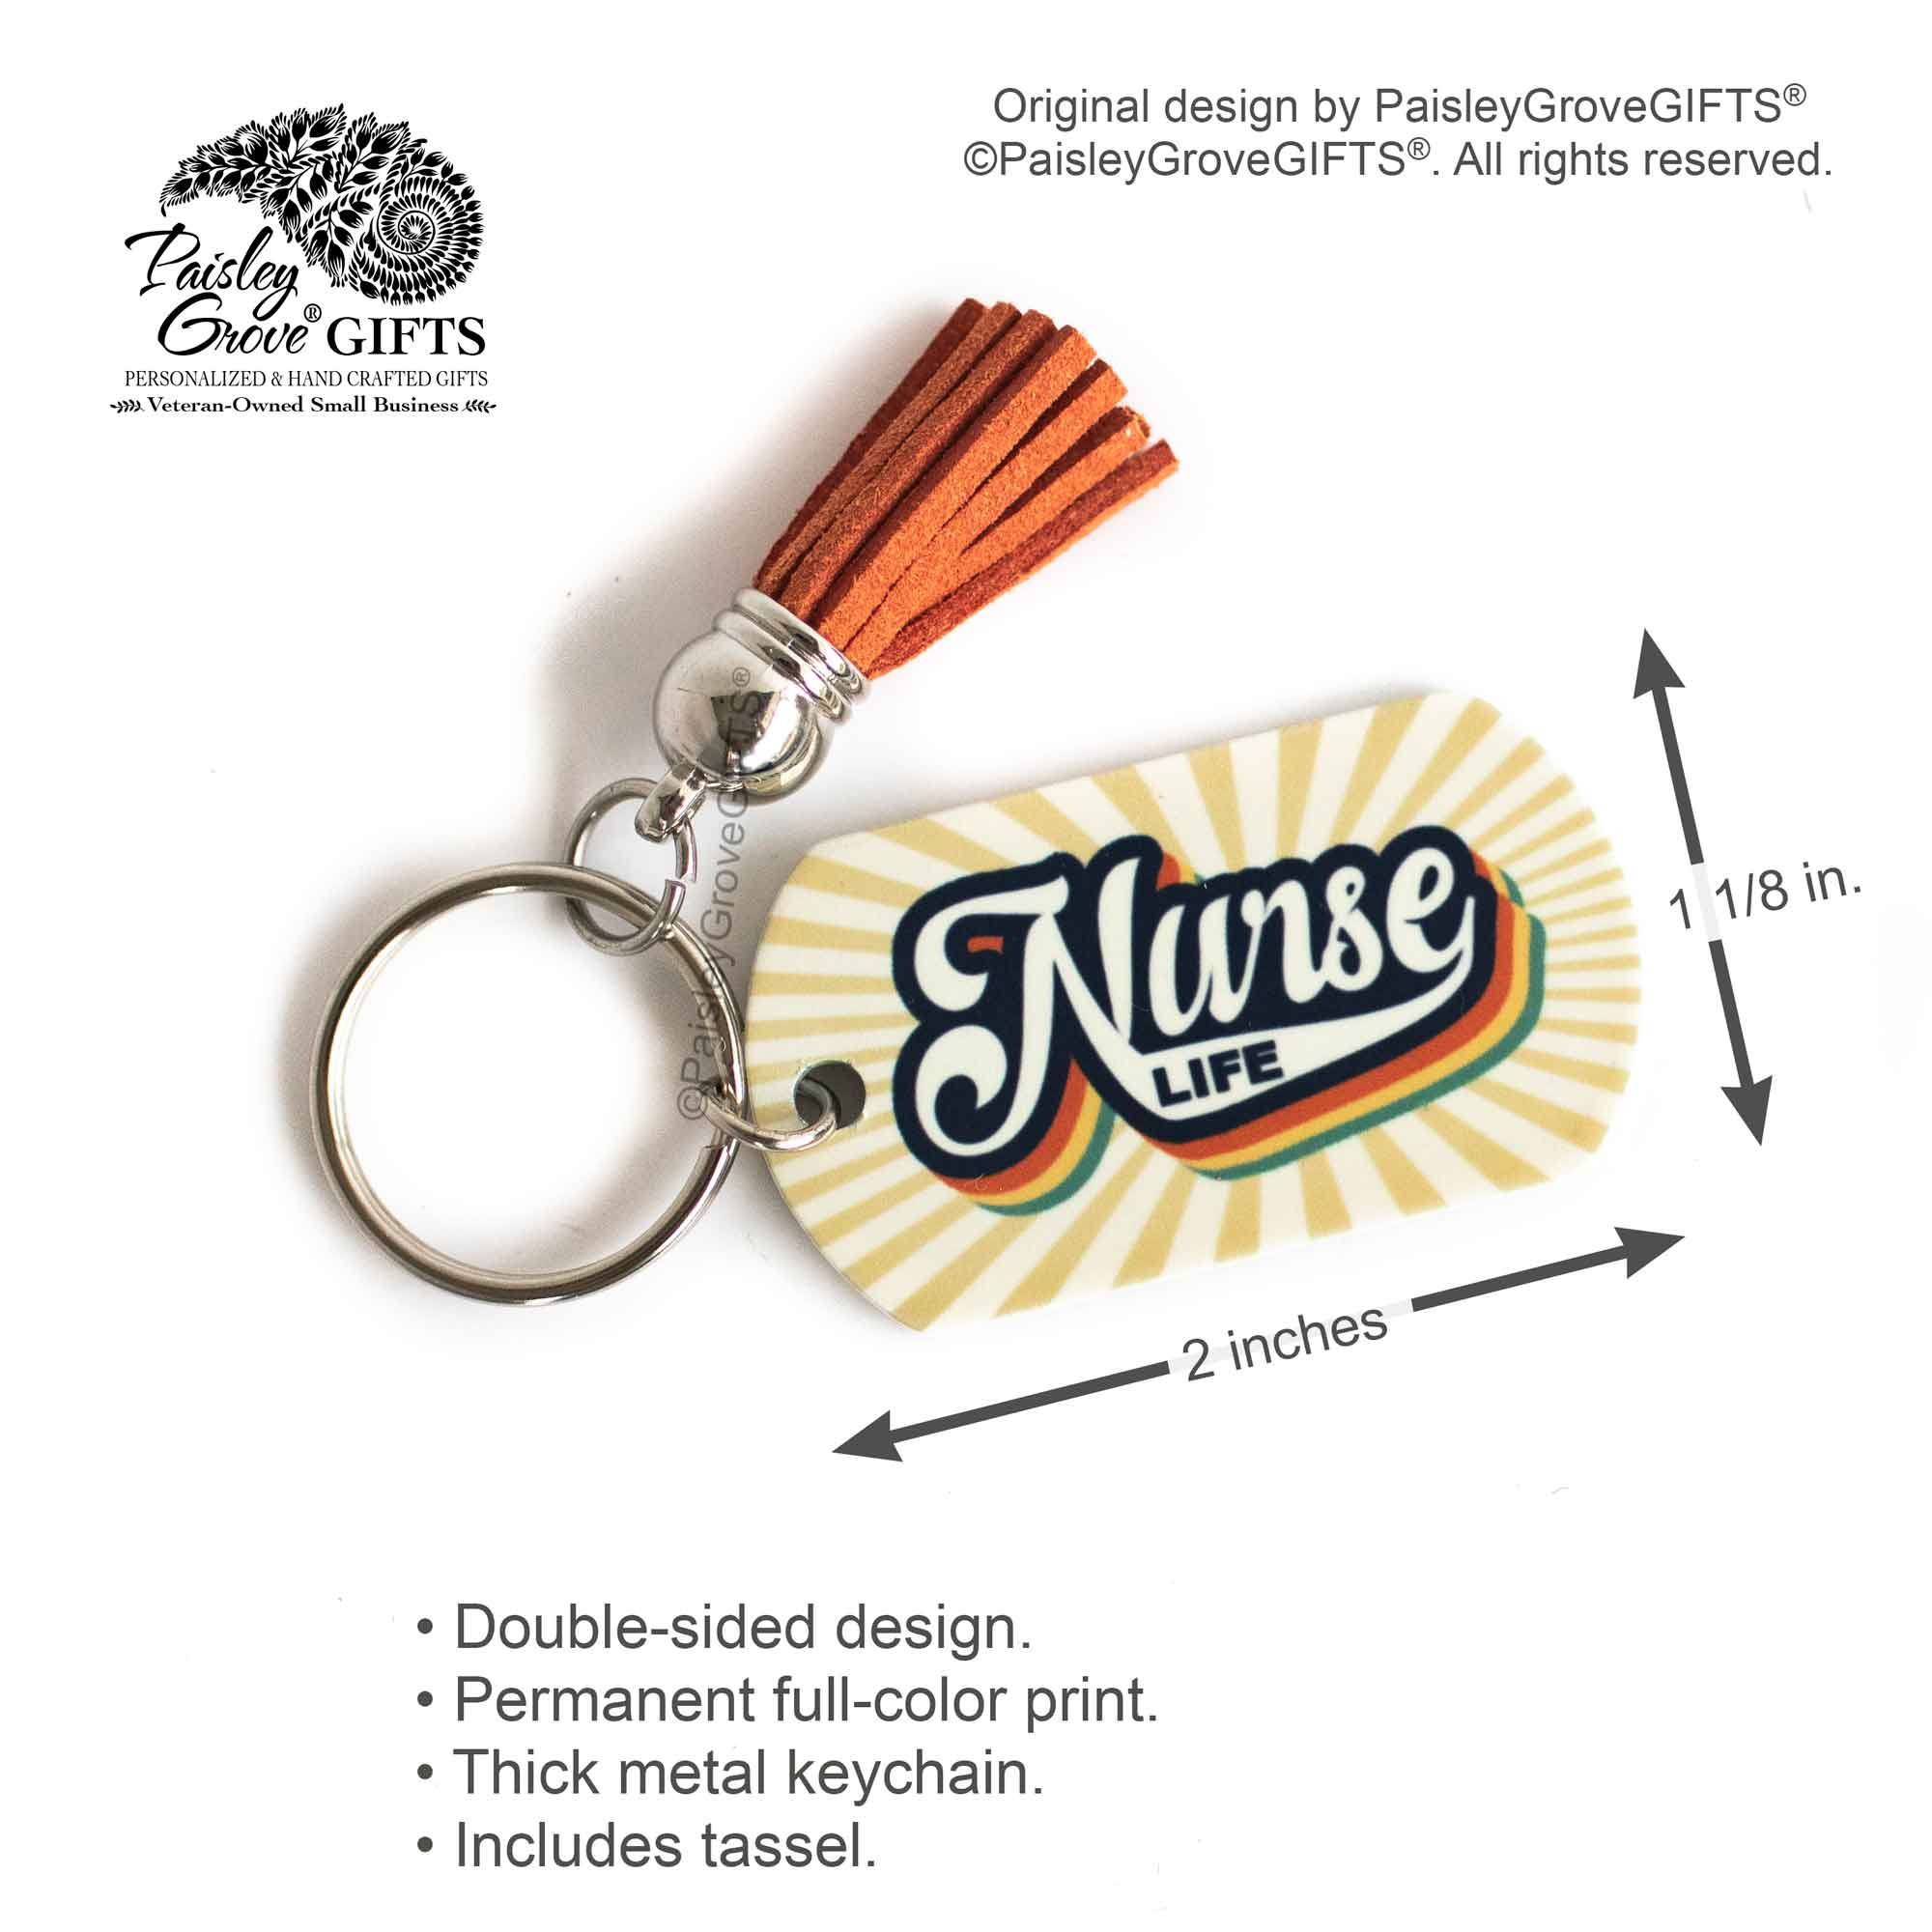 CopyrightPaisleyGroveGIFTS S009n1 Infographics Measurement of NurseLife Key Chain Gift for RN LPN NP